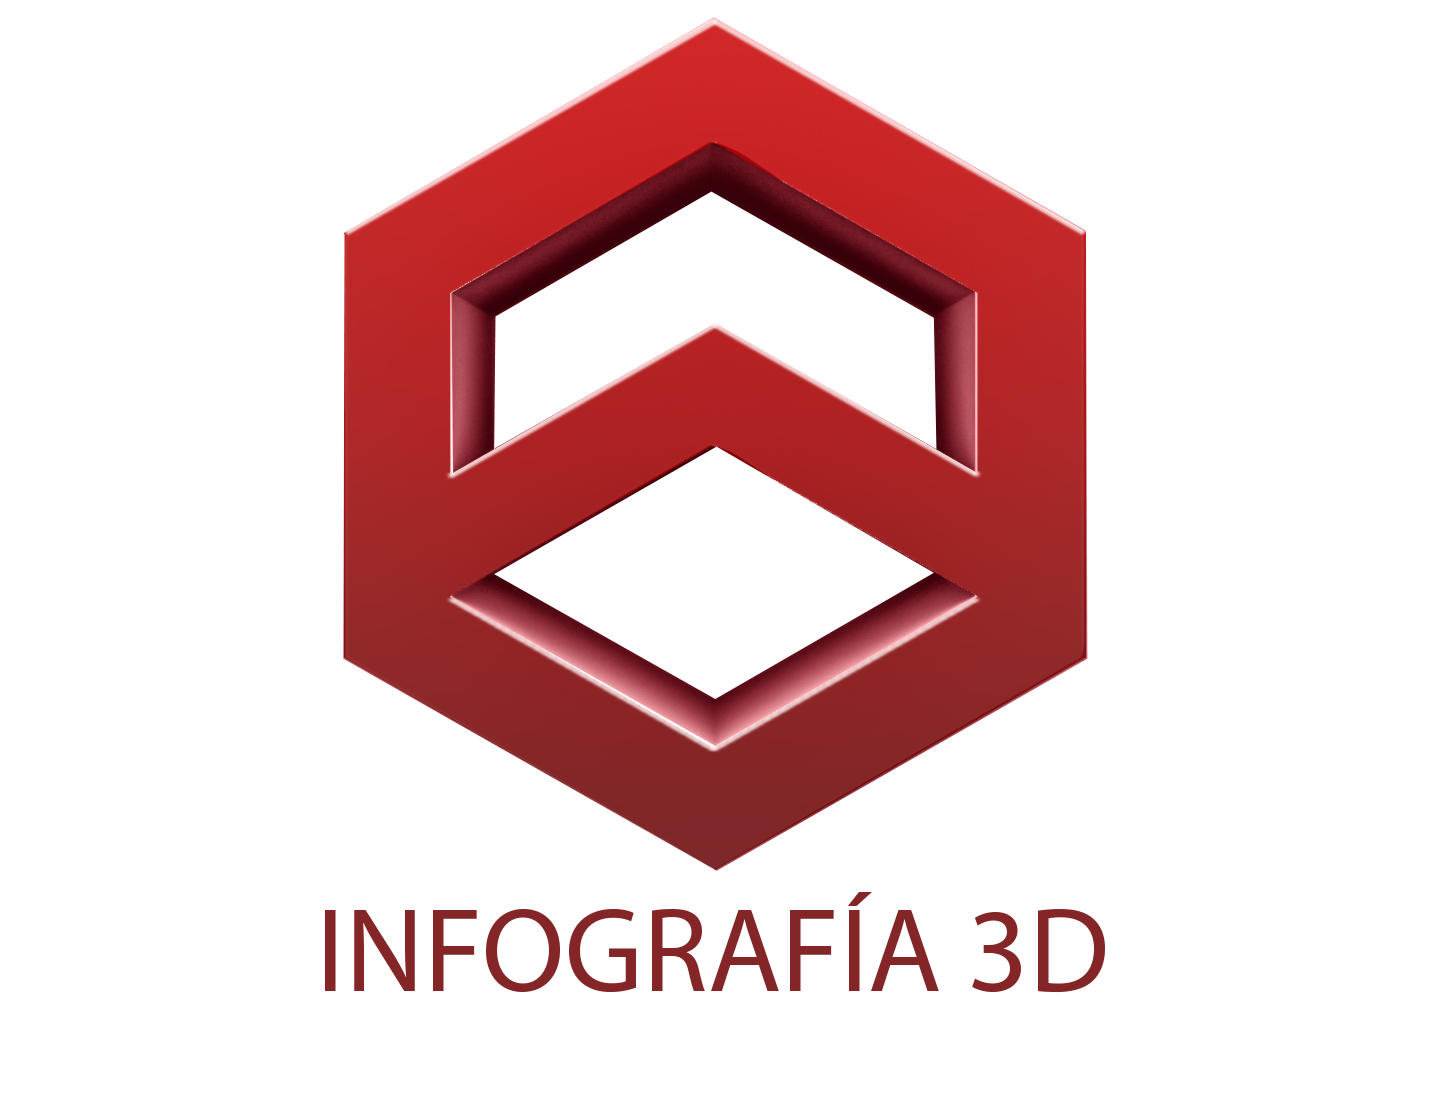 Infograf a y dise o 3d luces ies light for Infografia 3d